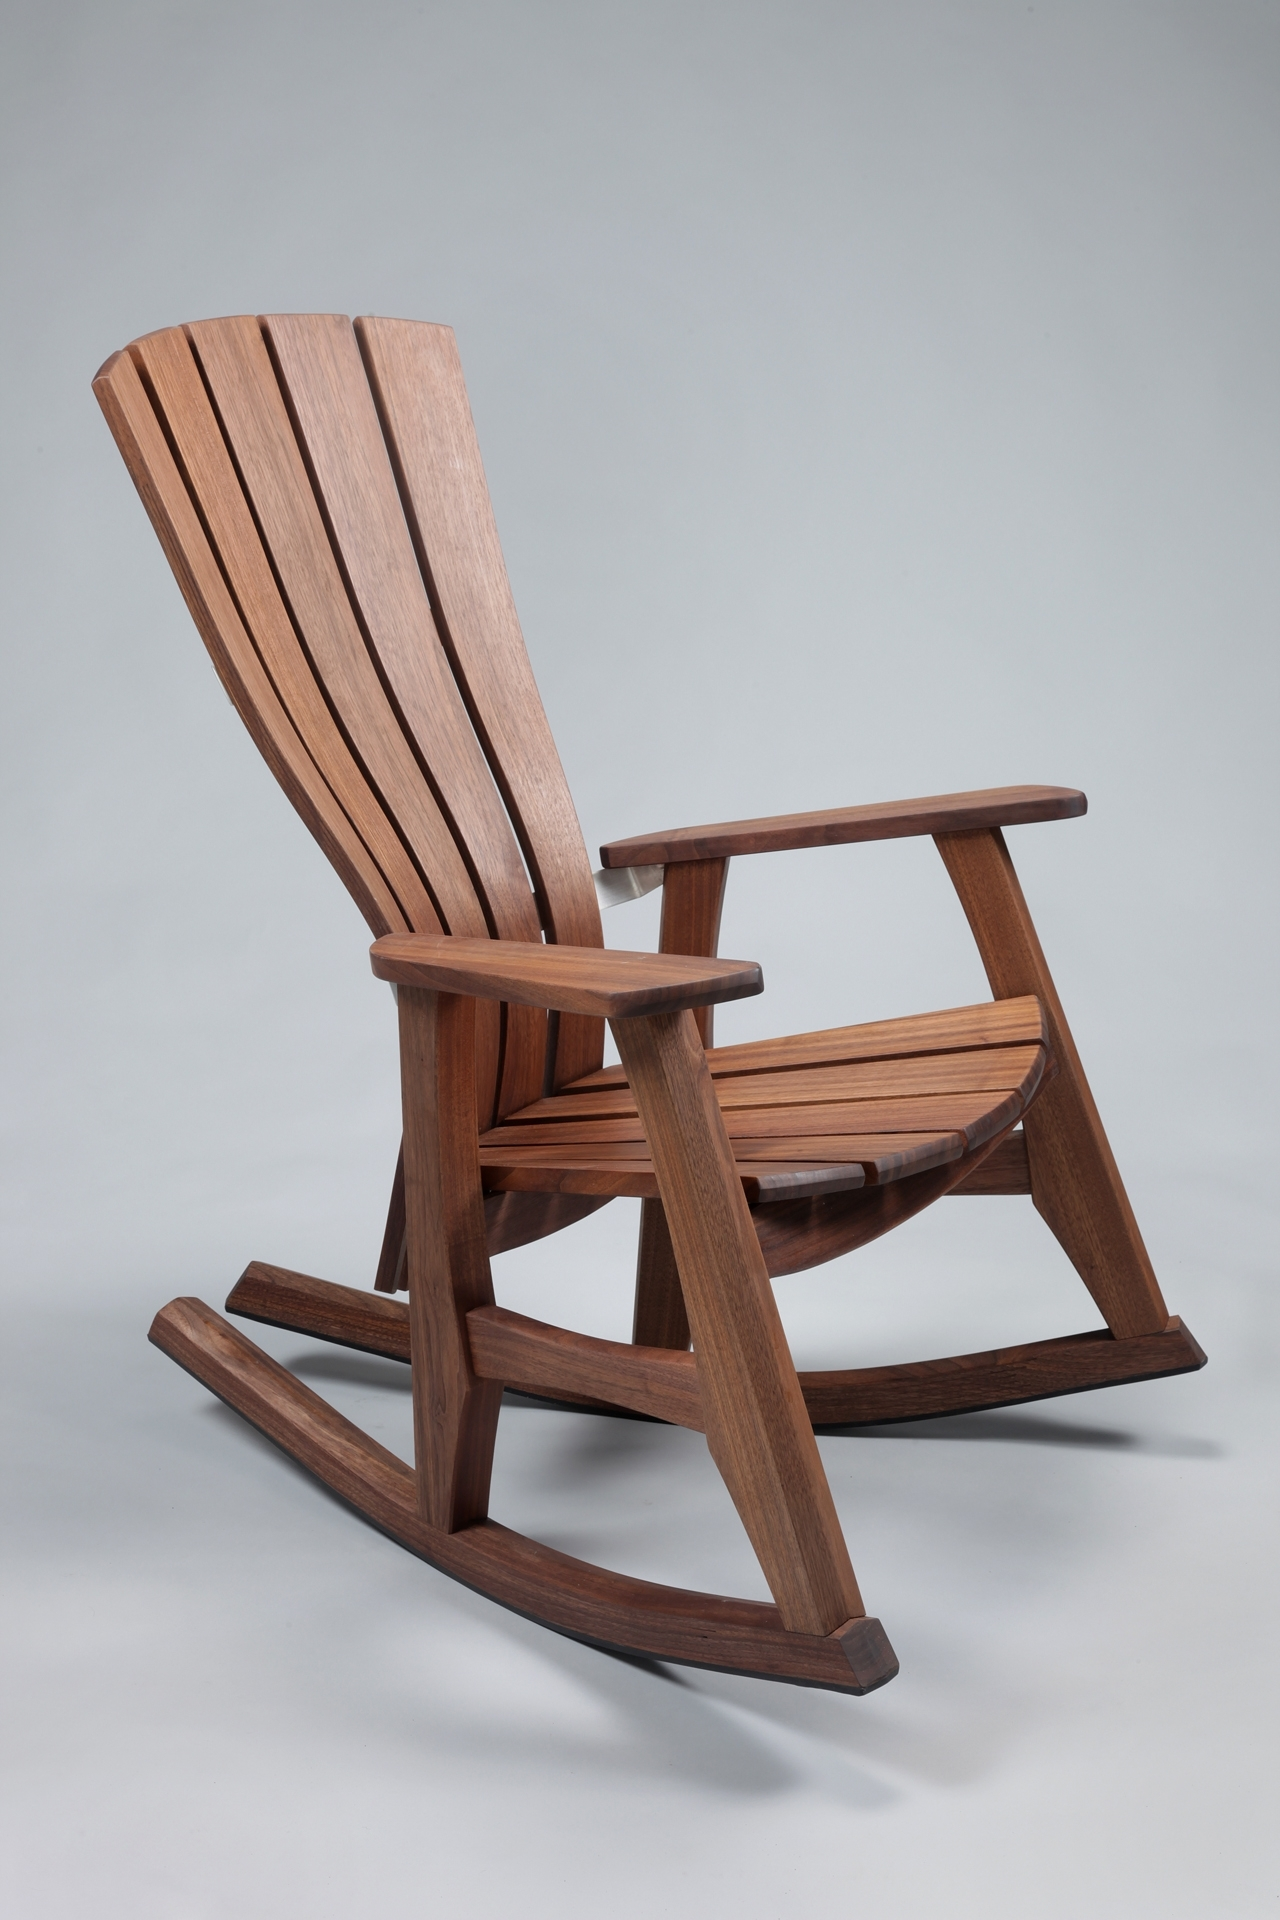 Livingroom : Patio Wooden Chairs Lawn Furniture Plans Free Garden Intended For Widely Used Used Patio Rocking Chairs (View 17 of 20)